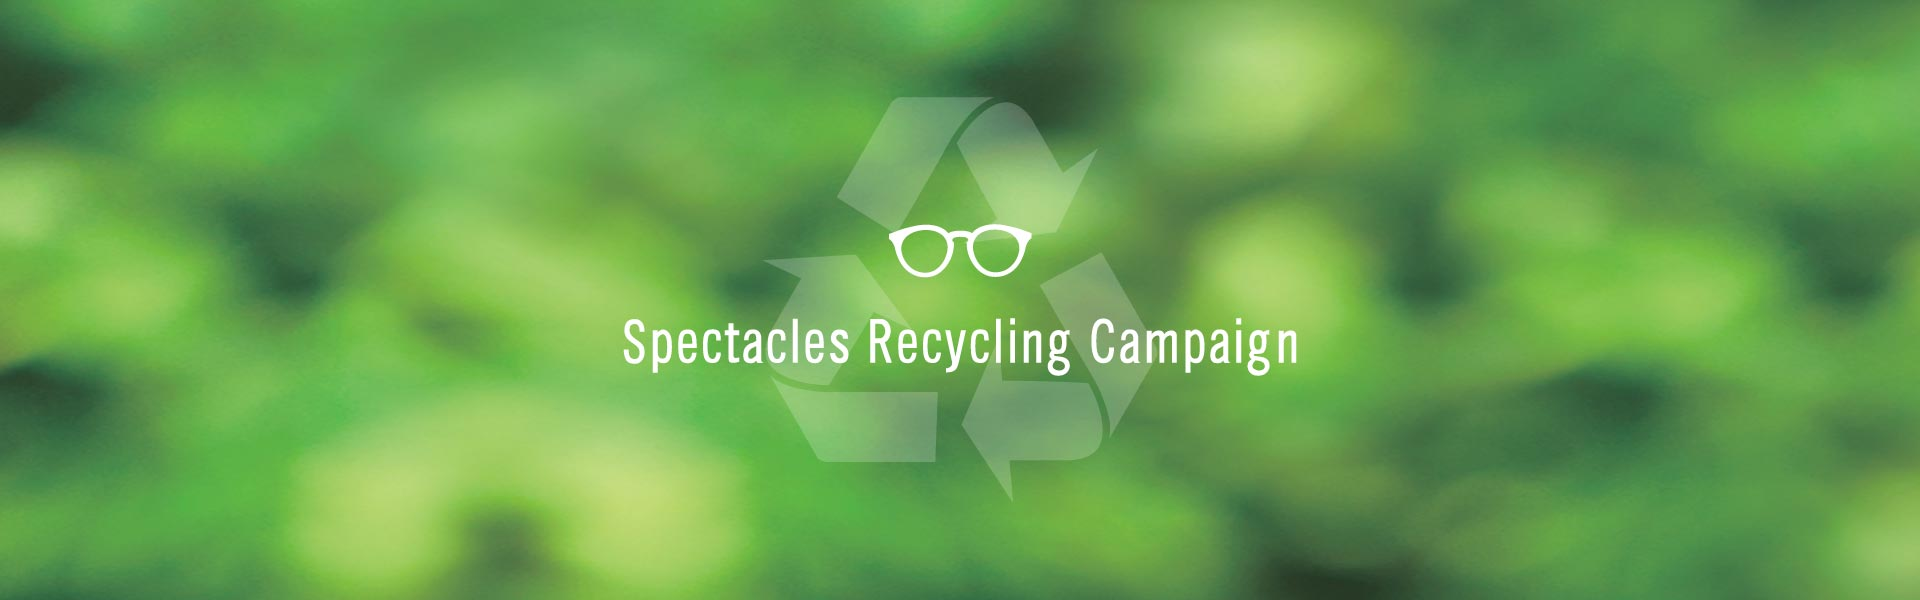 Spectacles Recycling Campaign